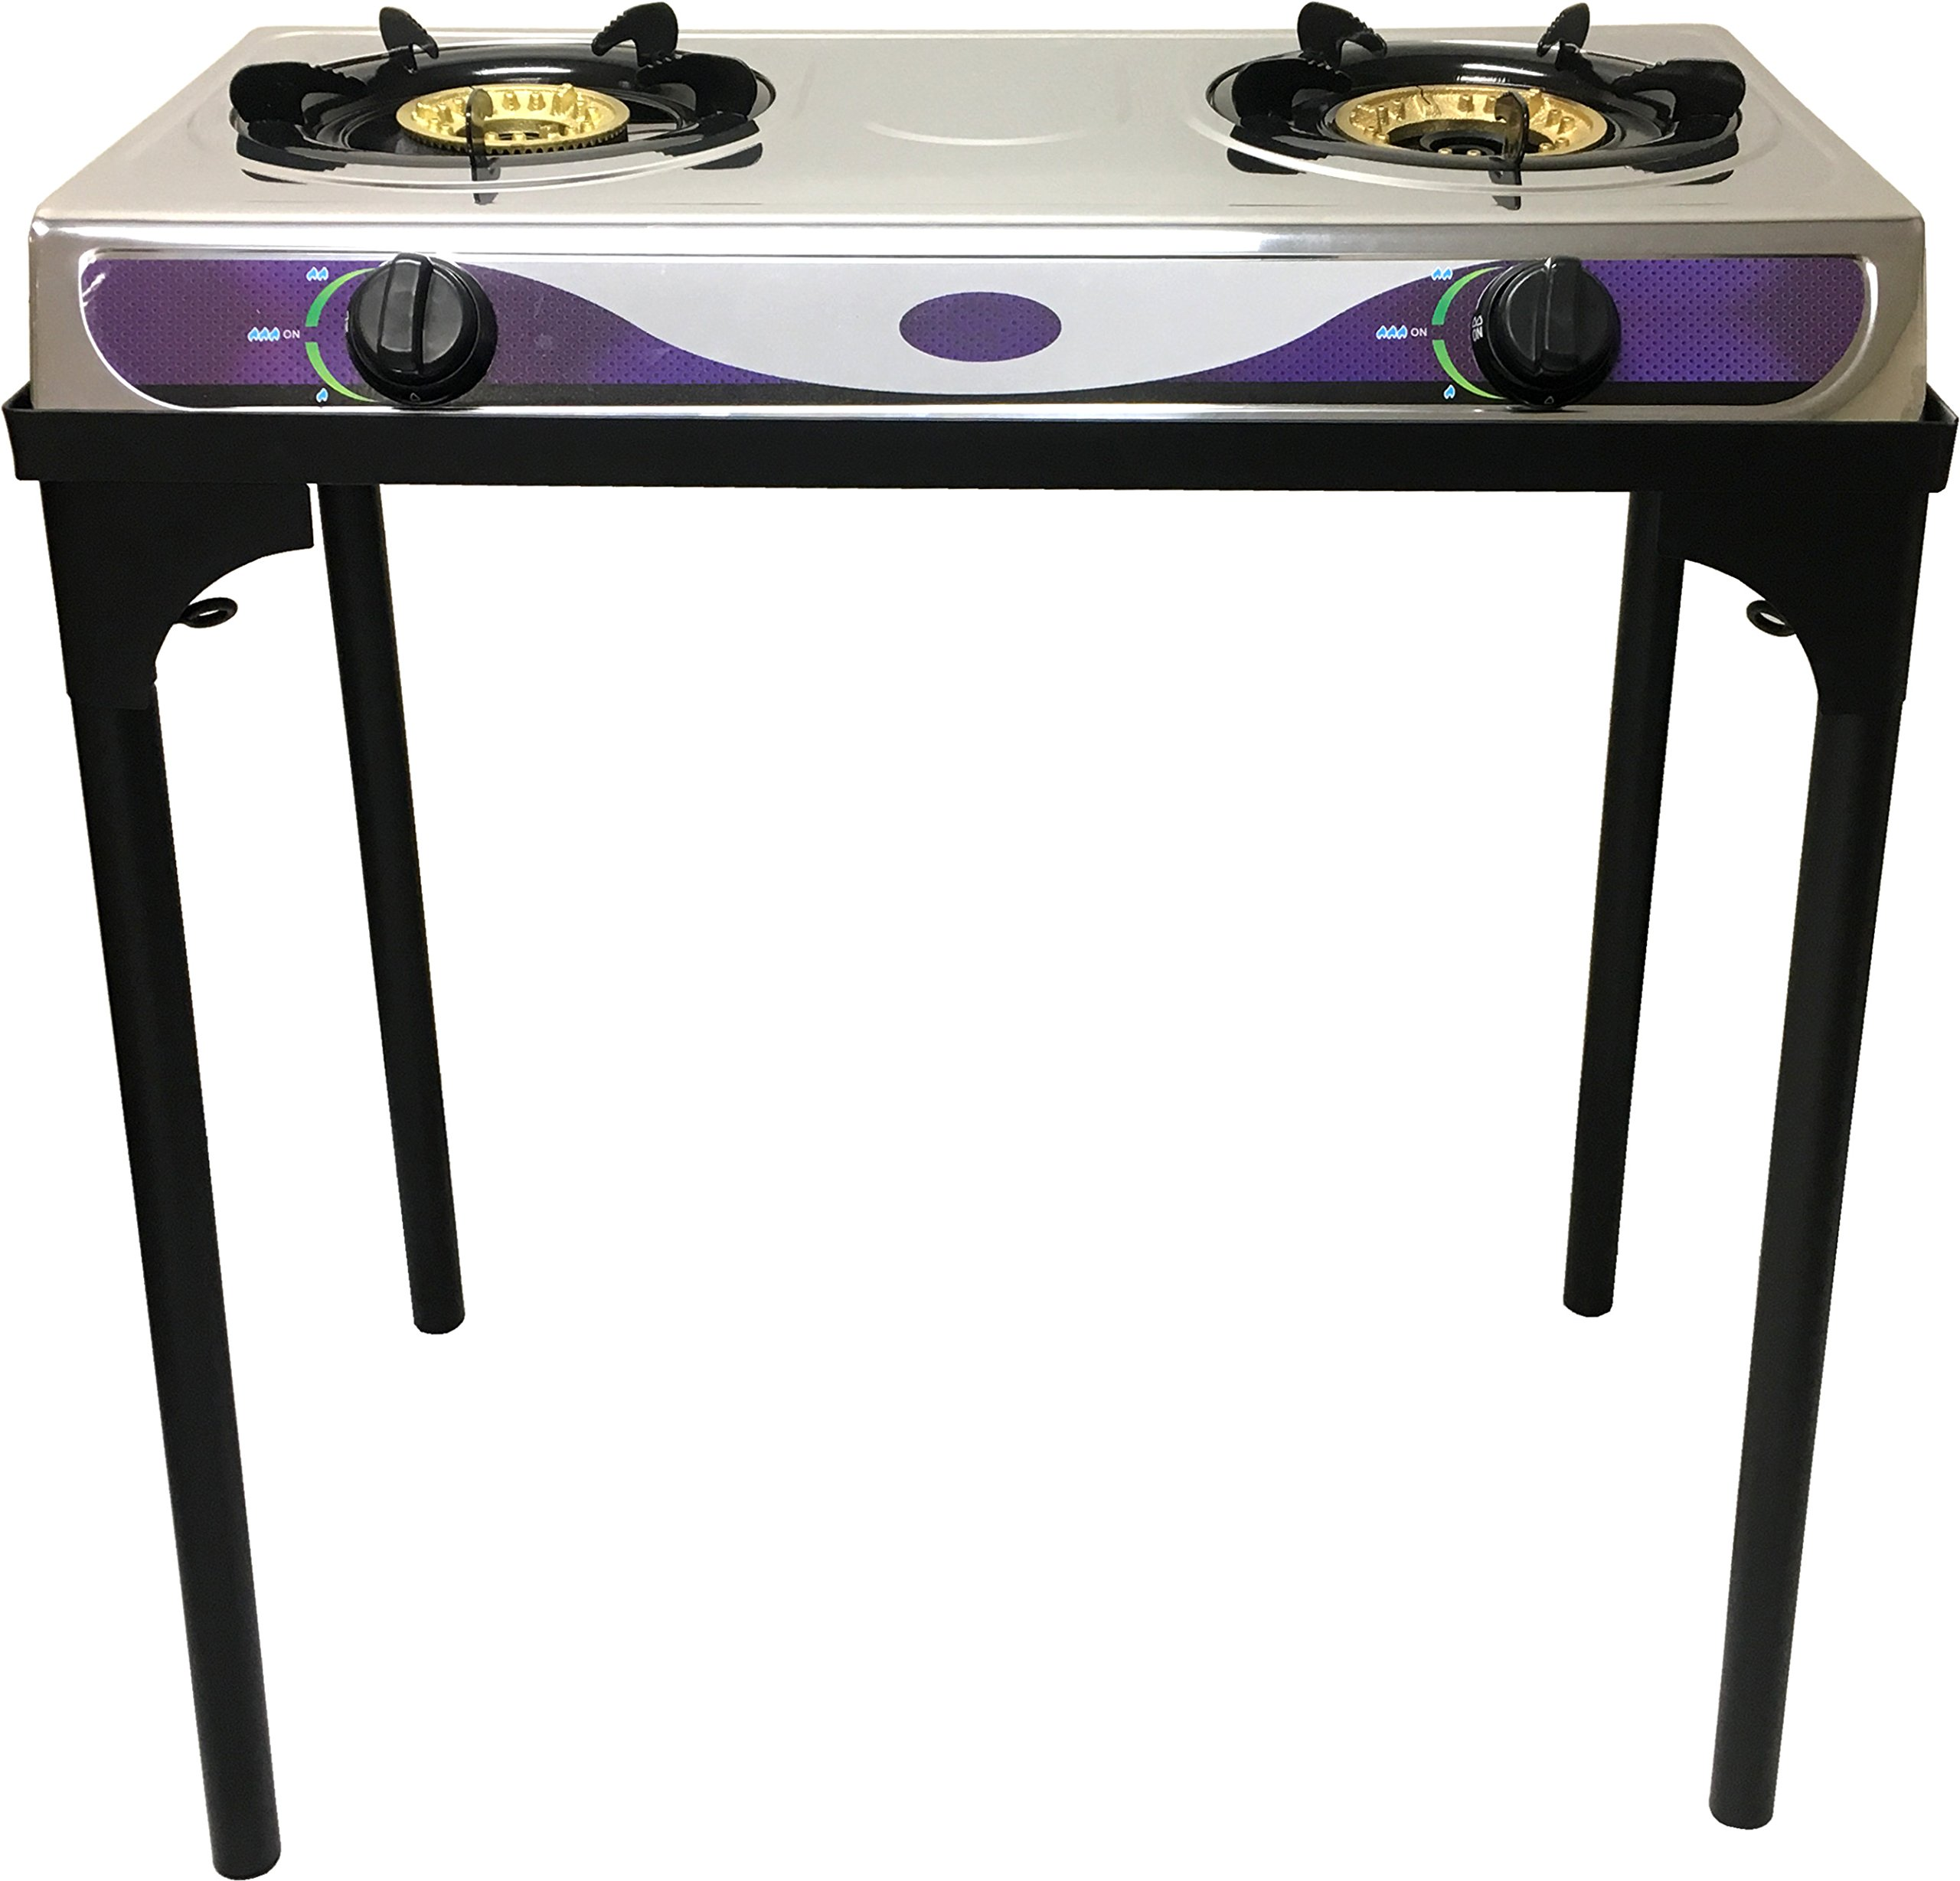 1 Heavy Duty Double Burner Propane Gas Stove Outdoor Cooking Butane Gas Stove Full Stainless Steel Body Electronic Ignition Available without or with Black Metal Stand (TWO STOVE BURNER WITH STAND)